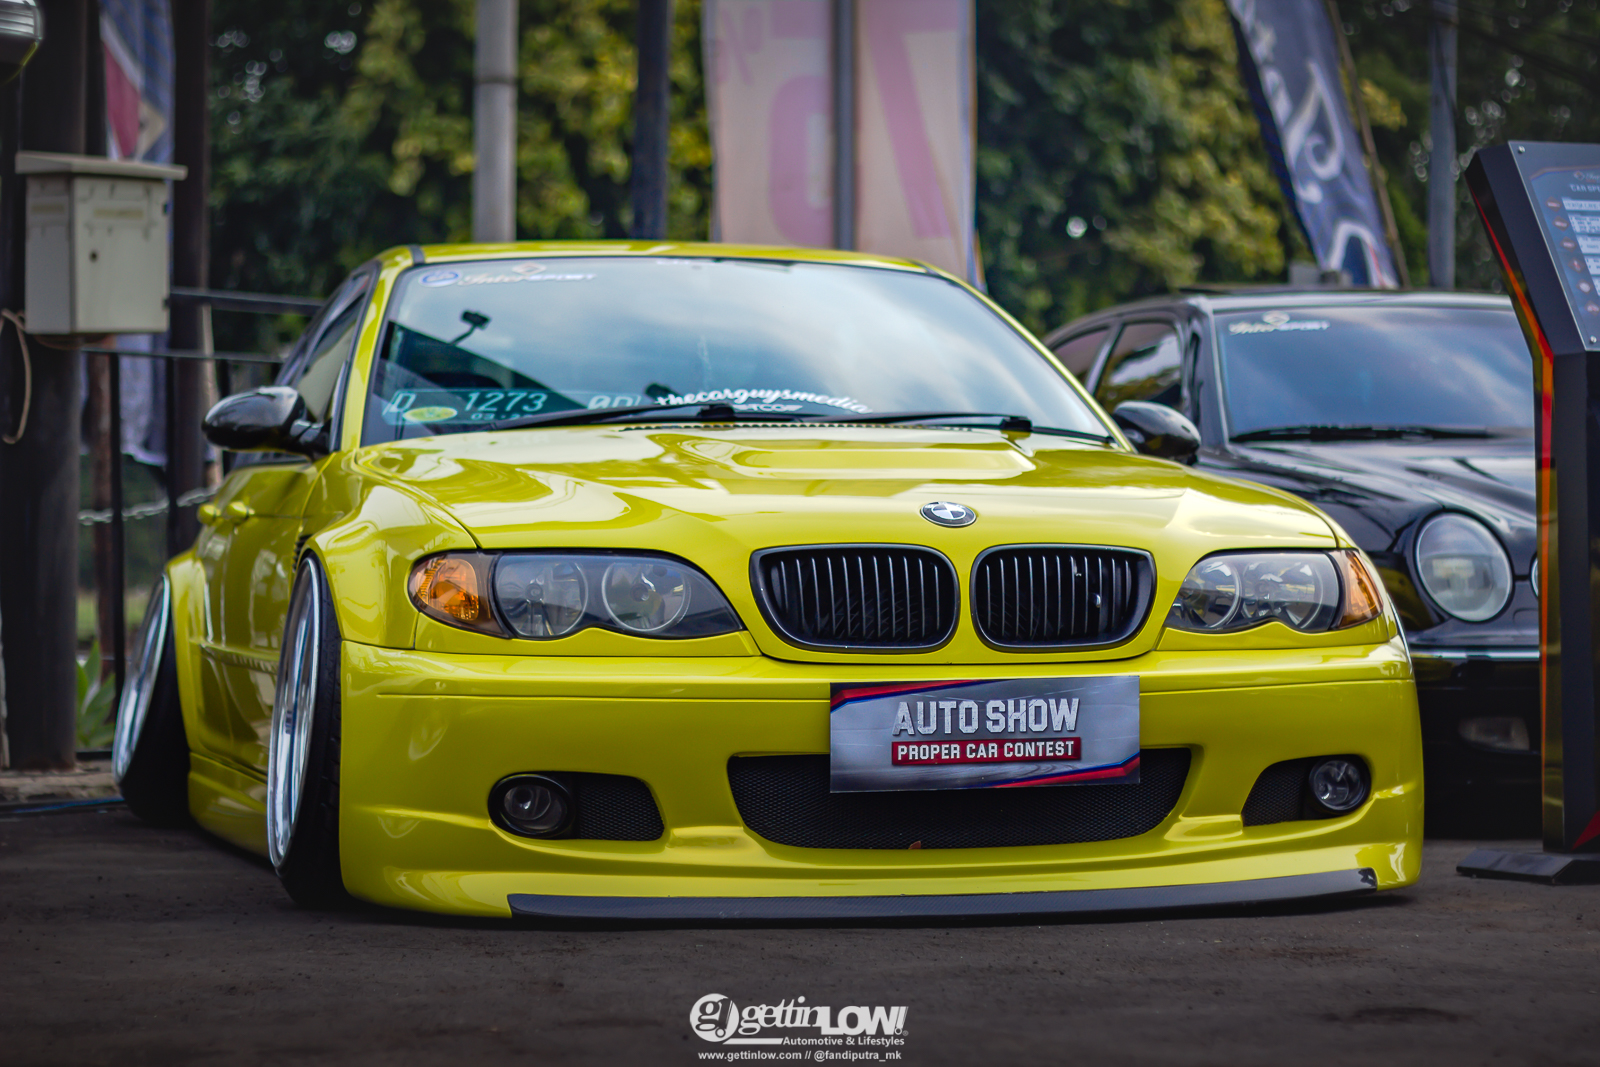 INTERSPORT-PROPERCARCONTEST-CAKUNG-CANON-65